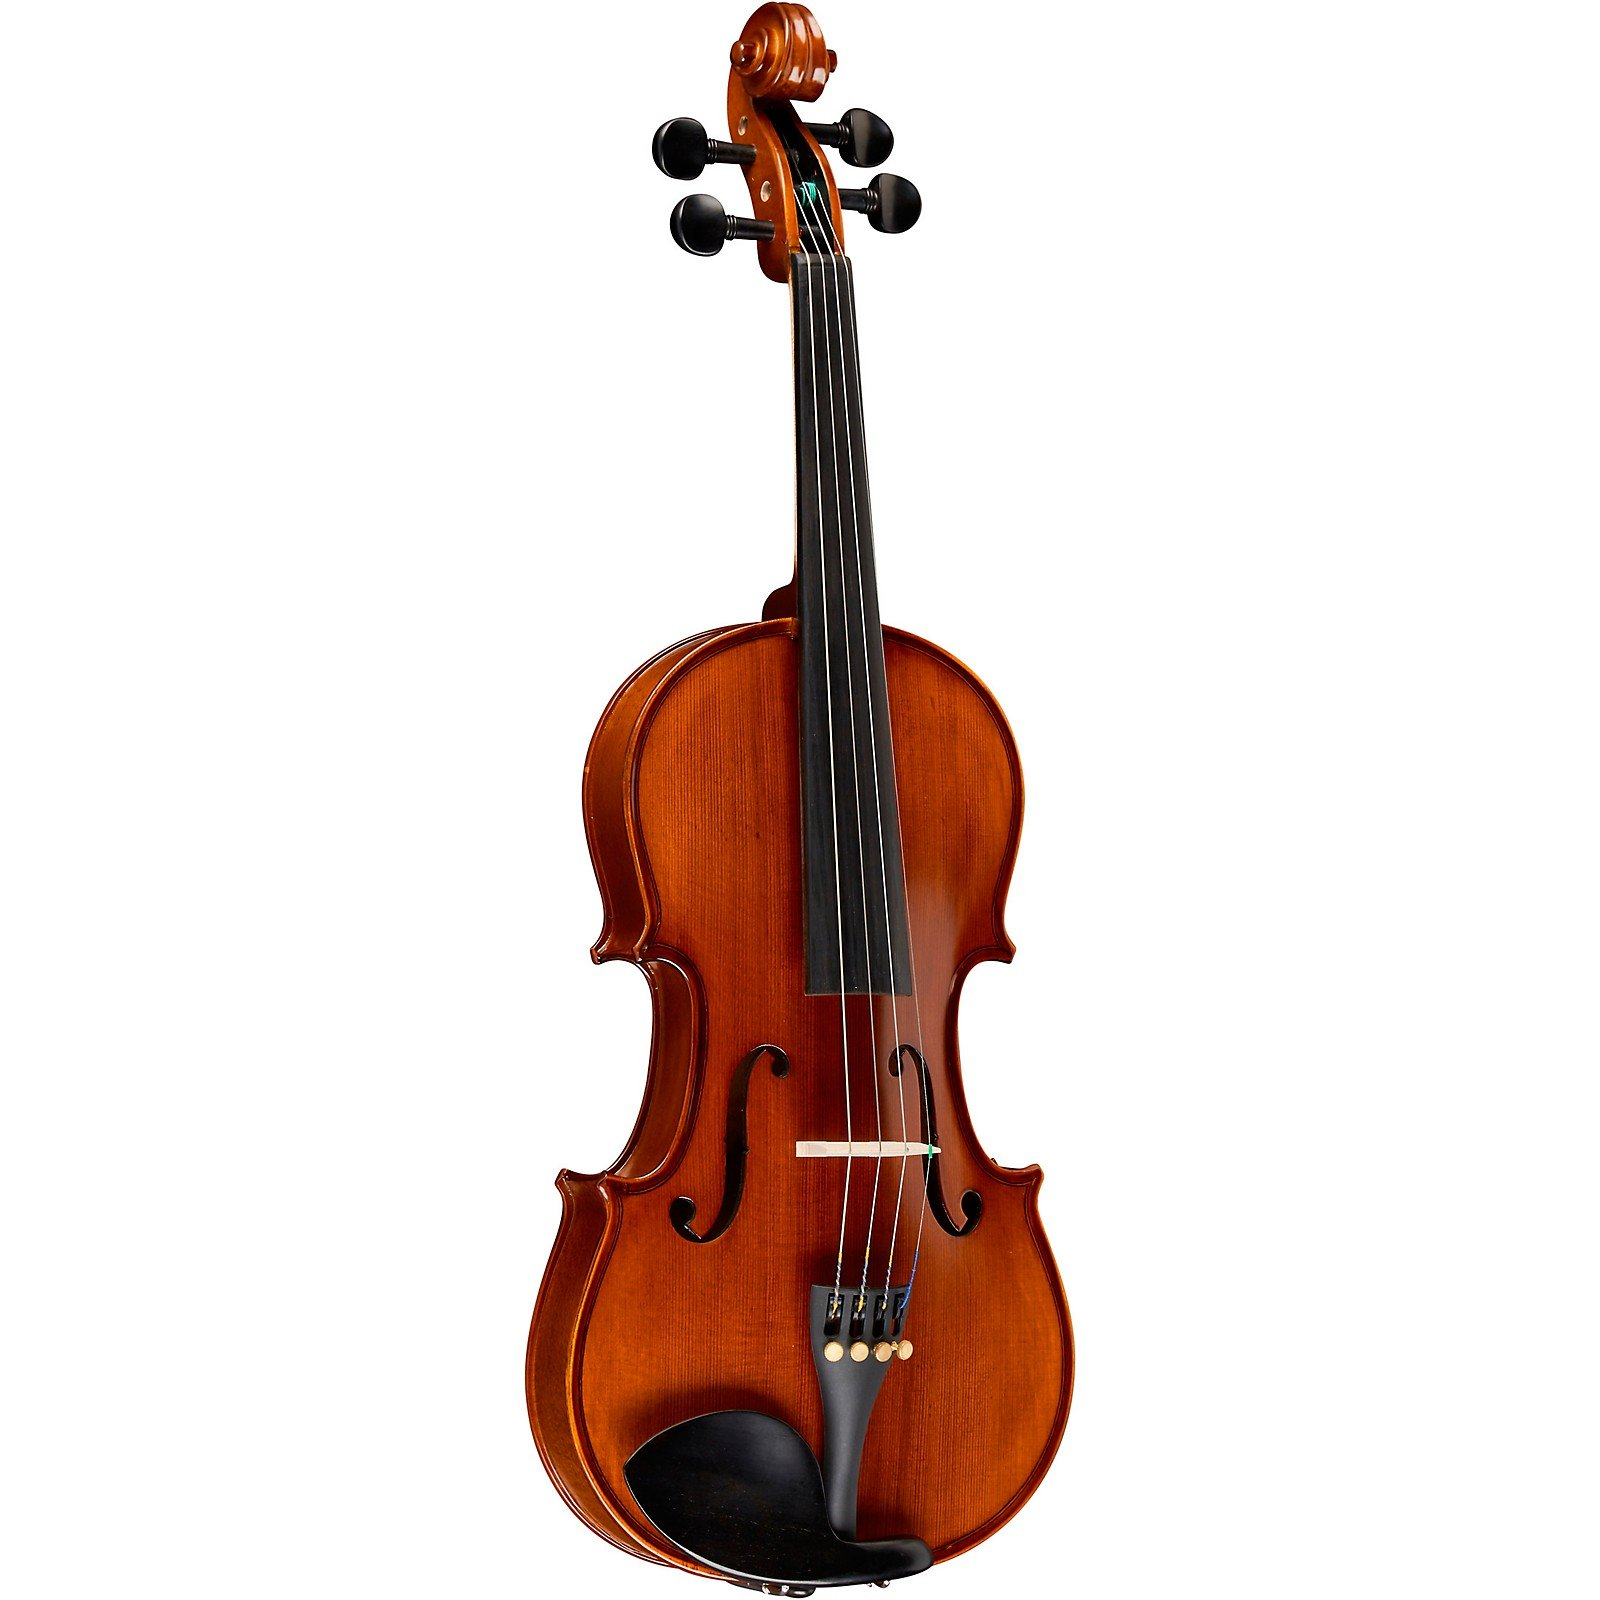 USED Bellafina Overture Series Violin Outfit 3/4 Size